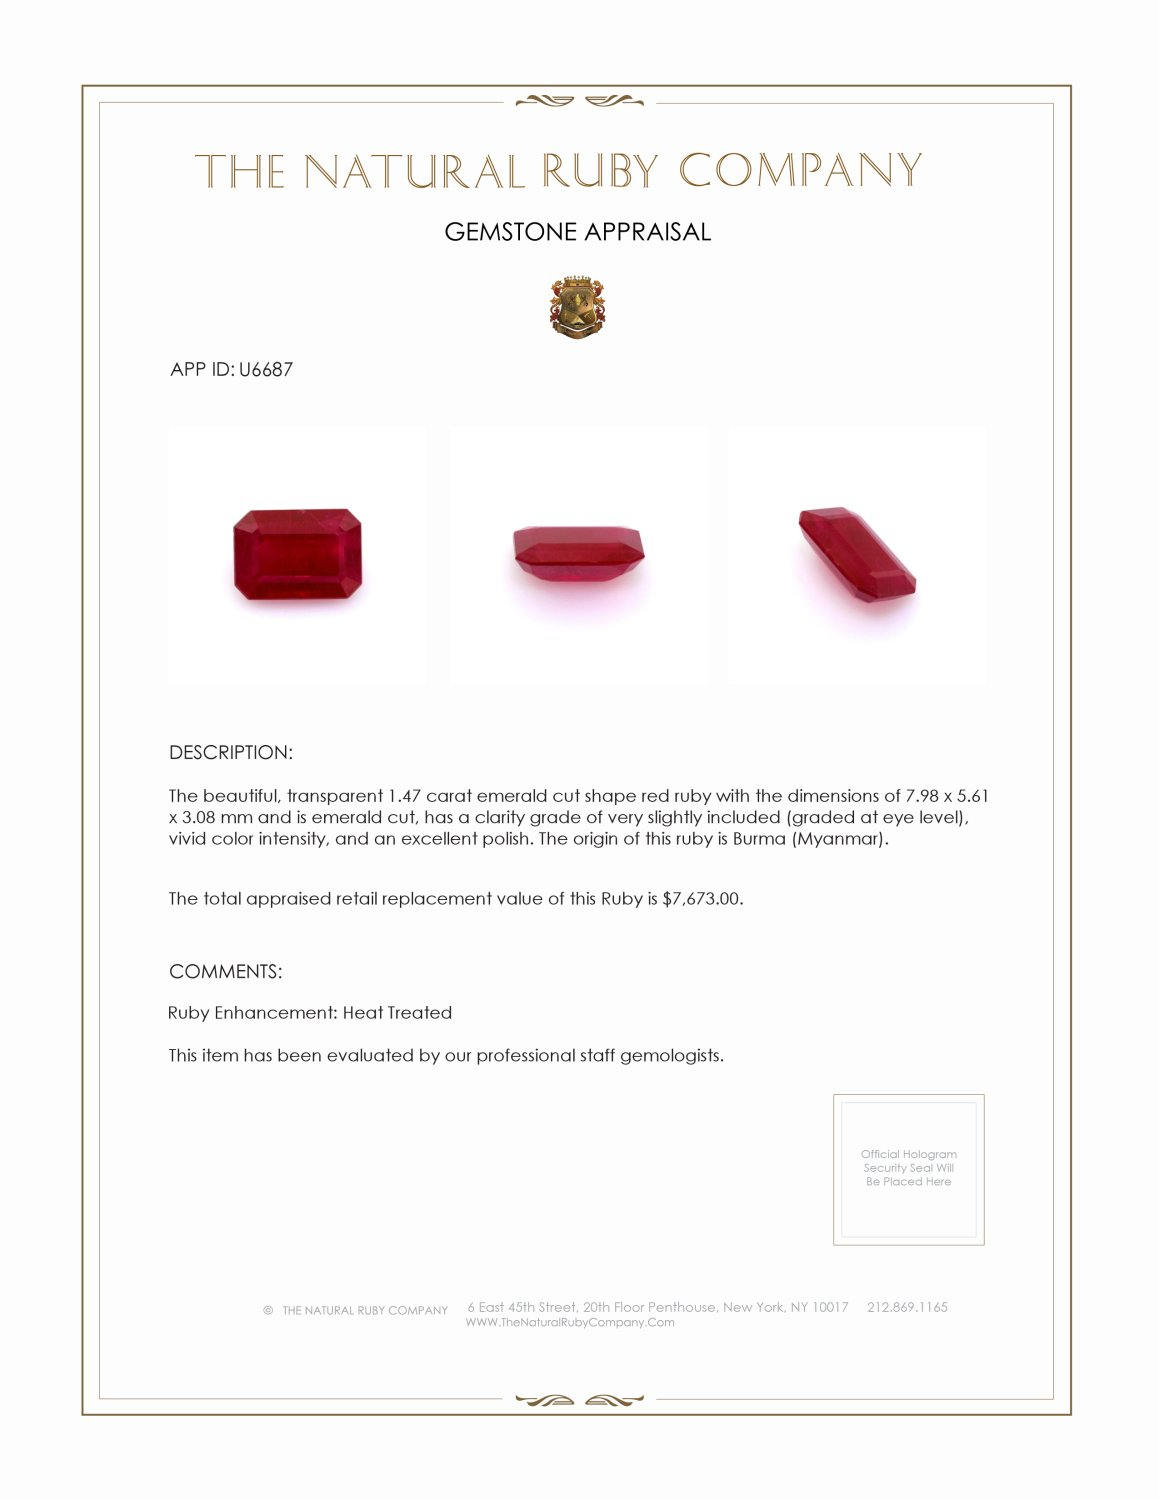 Natural Ruby U6687 Certification 4